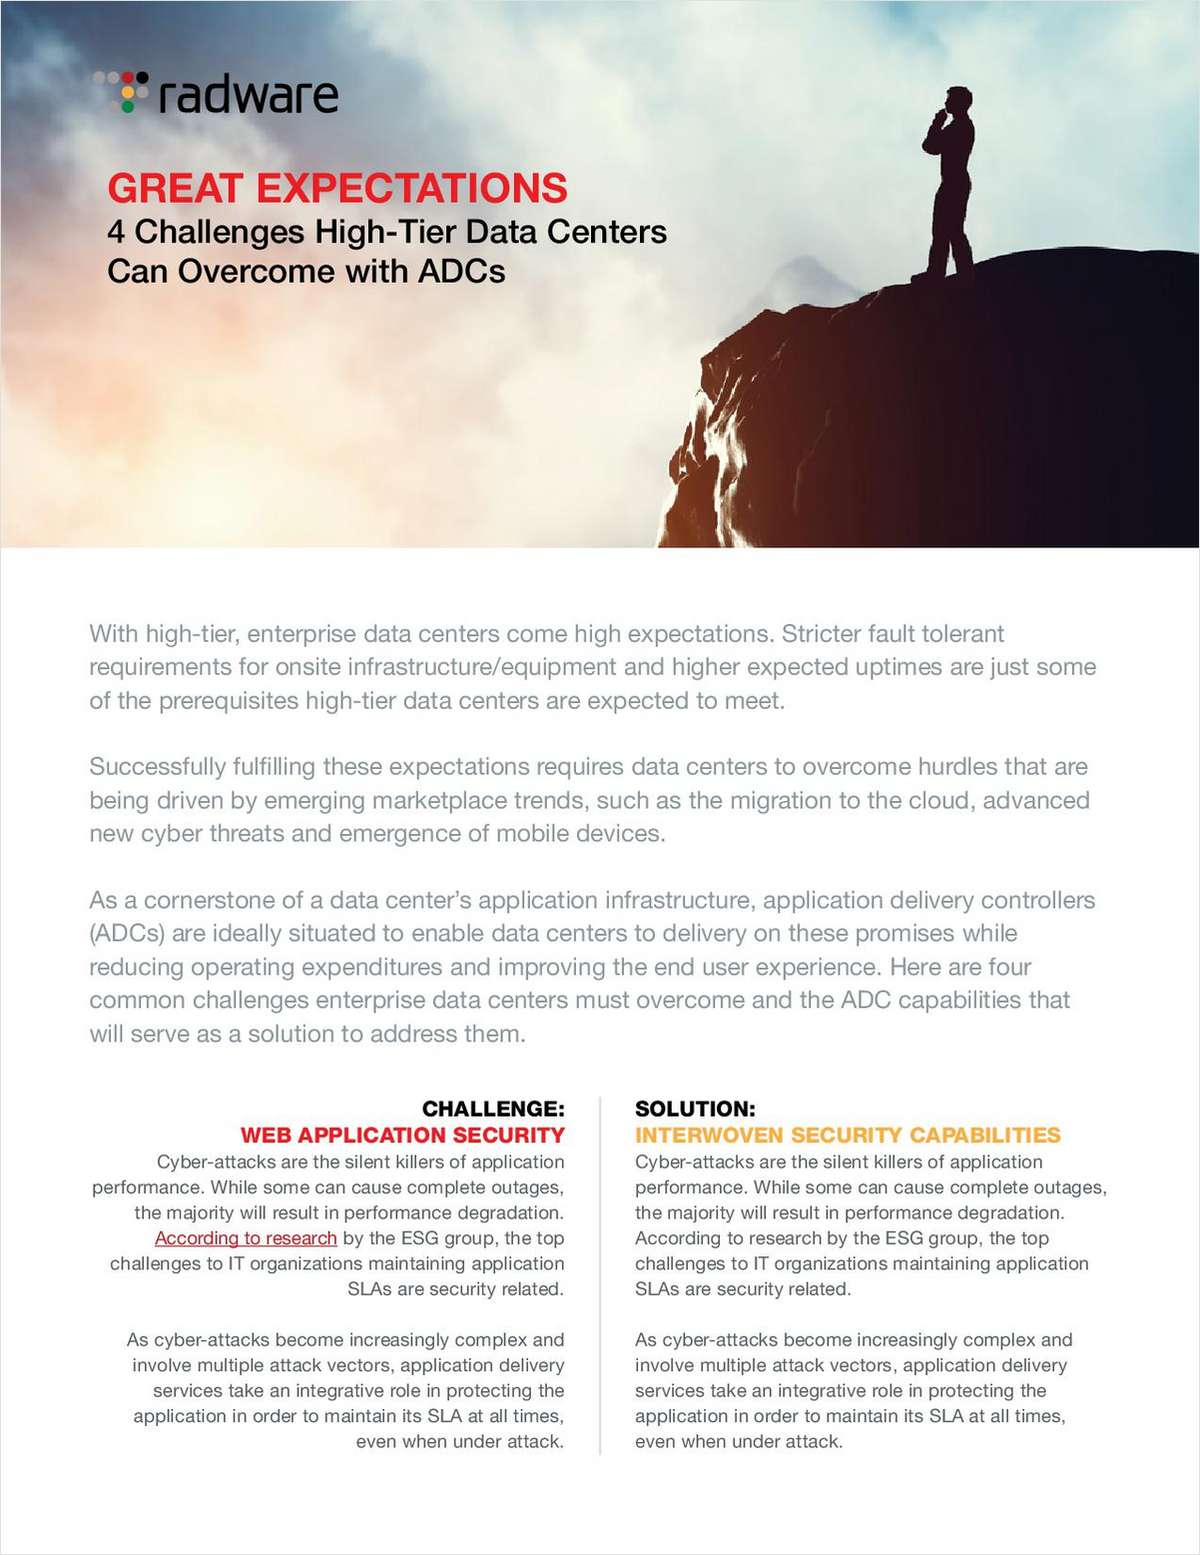 4 Challenges High-Tier Data Centers Can Overcome with ADCs